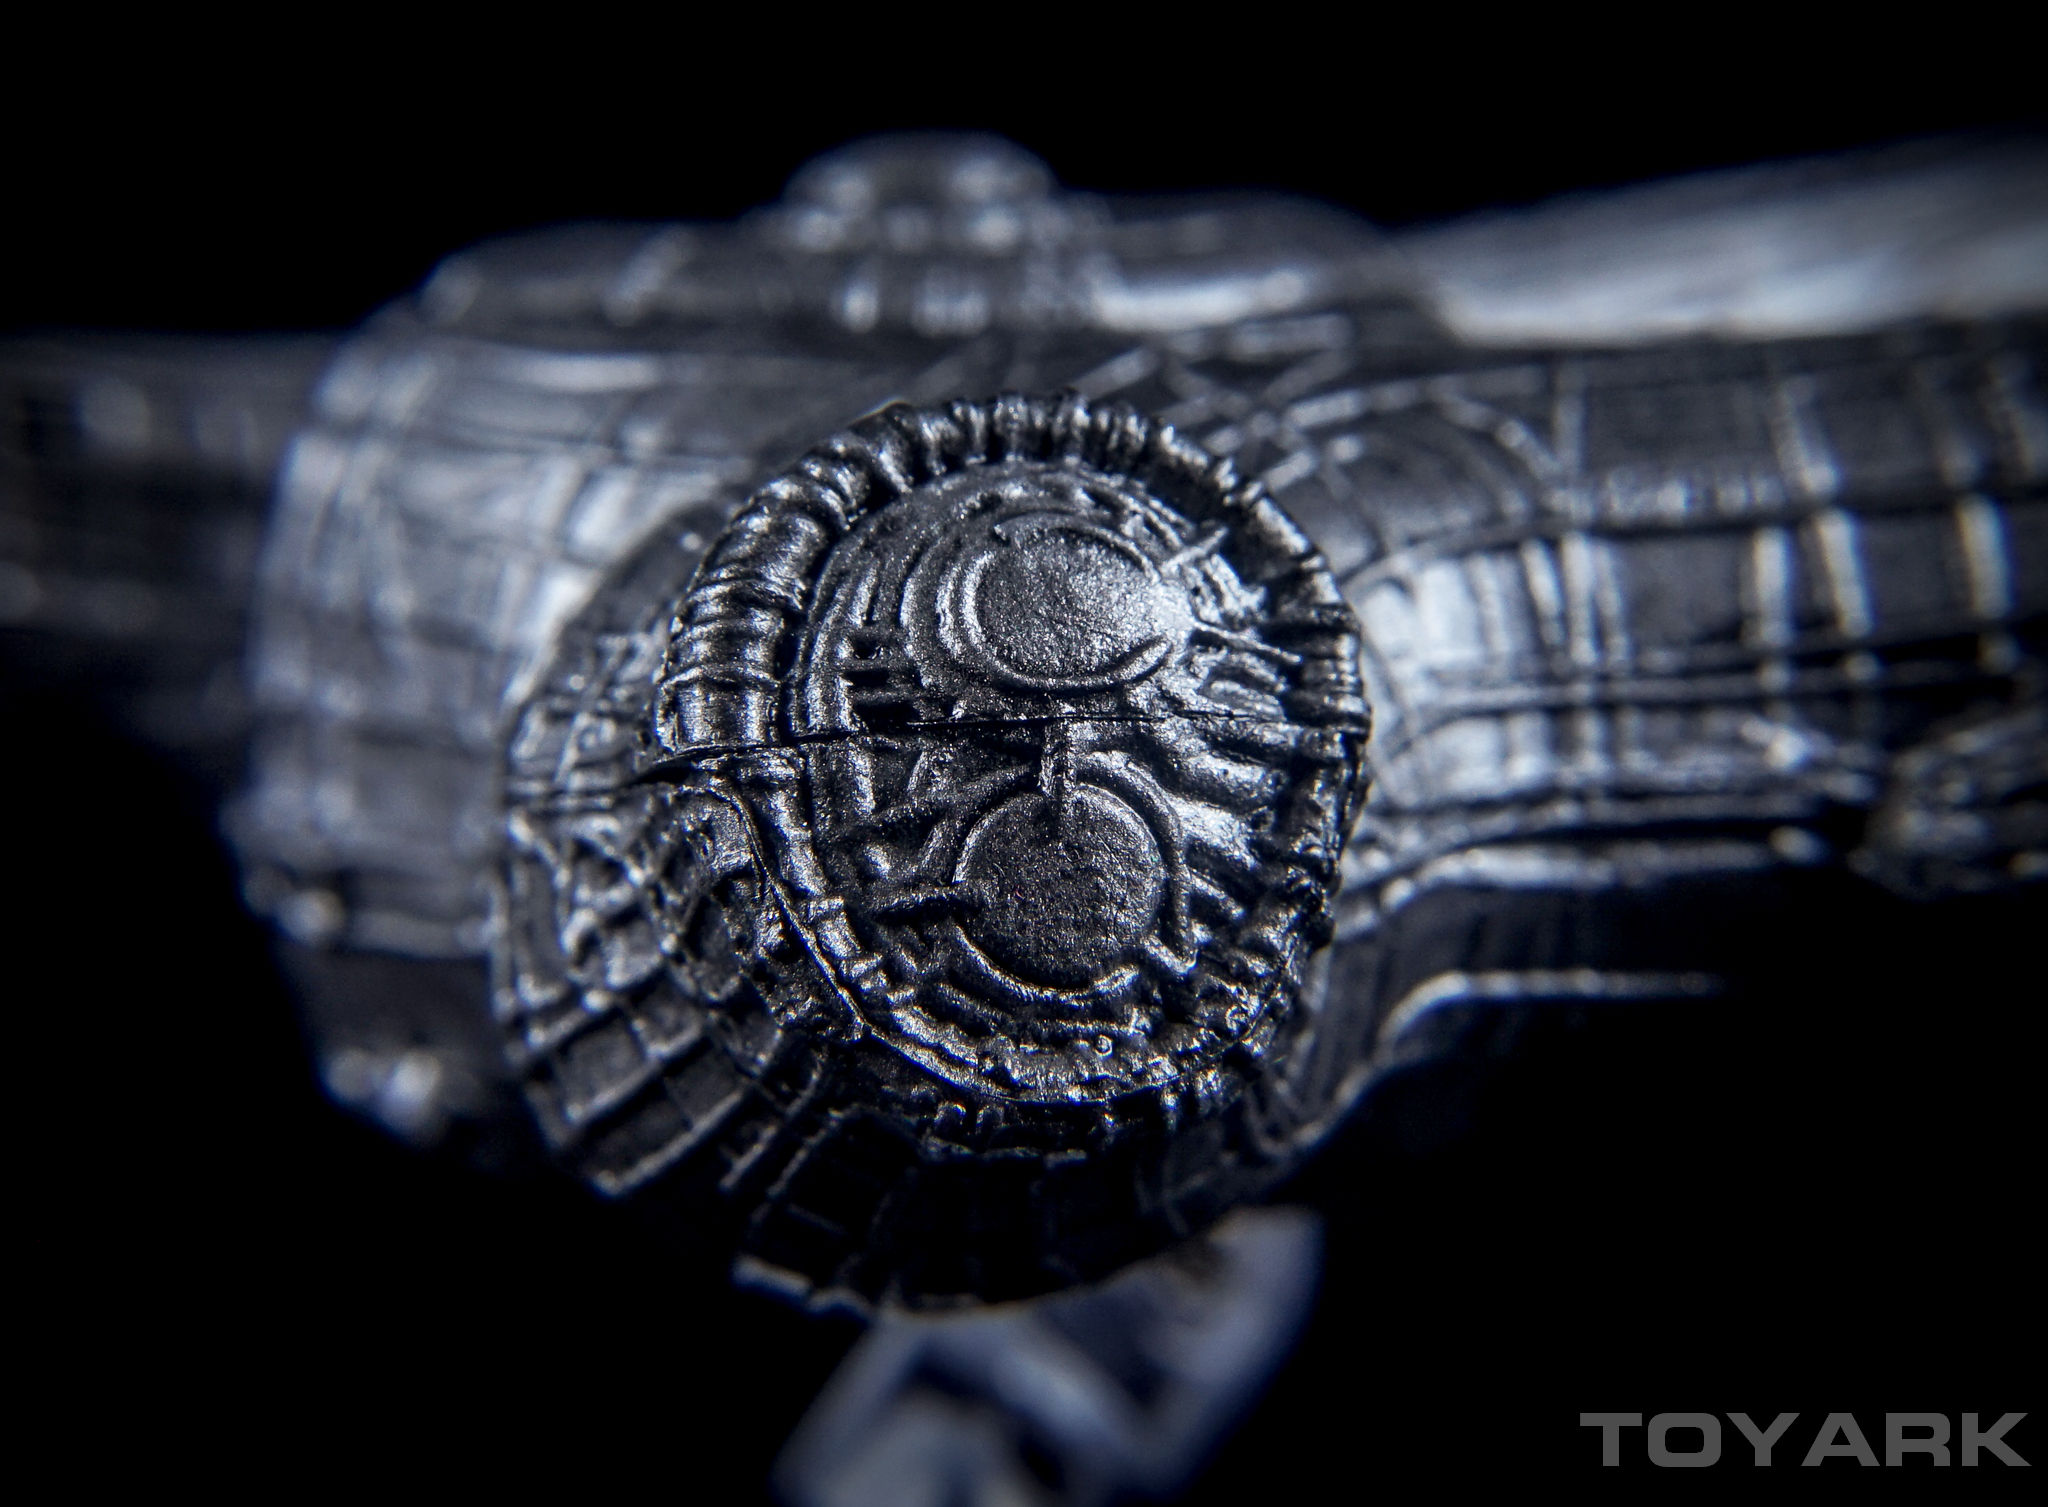 http://news.toyark.com/wp-content/uploads/sites/4/2016/04/NECA-Cinemachines-Aliens-Series-099.jpg